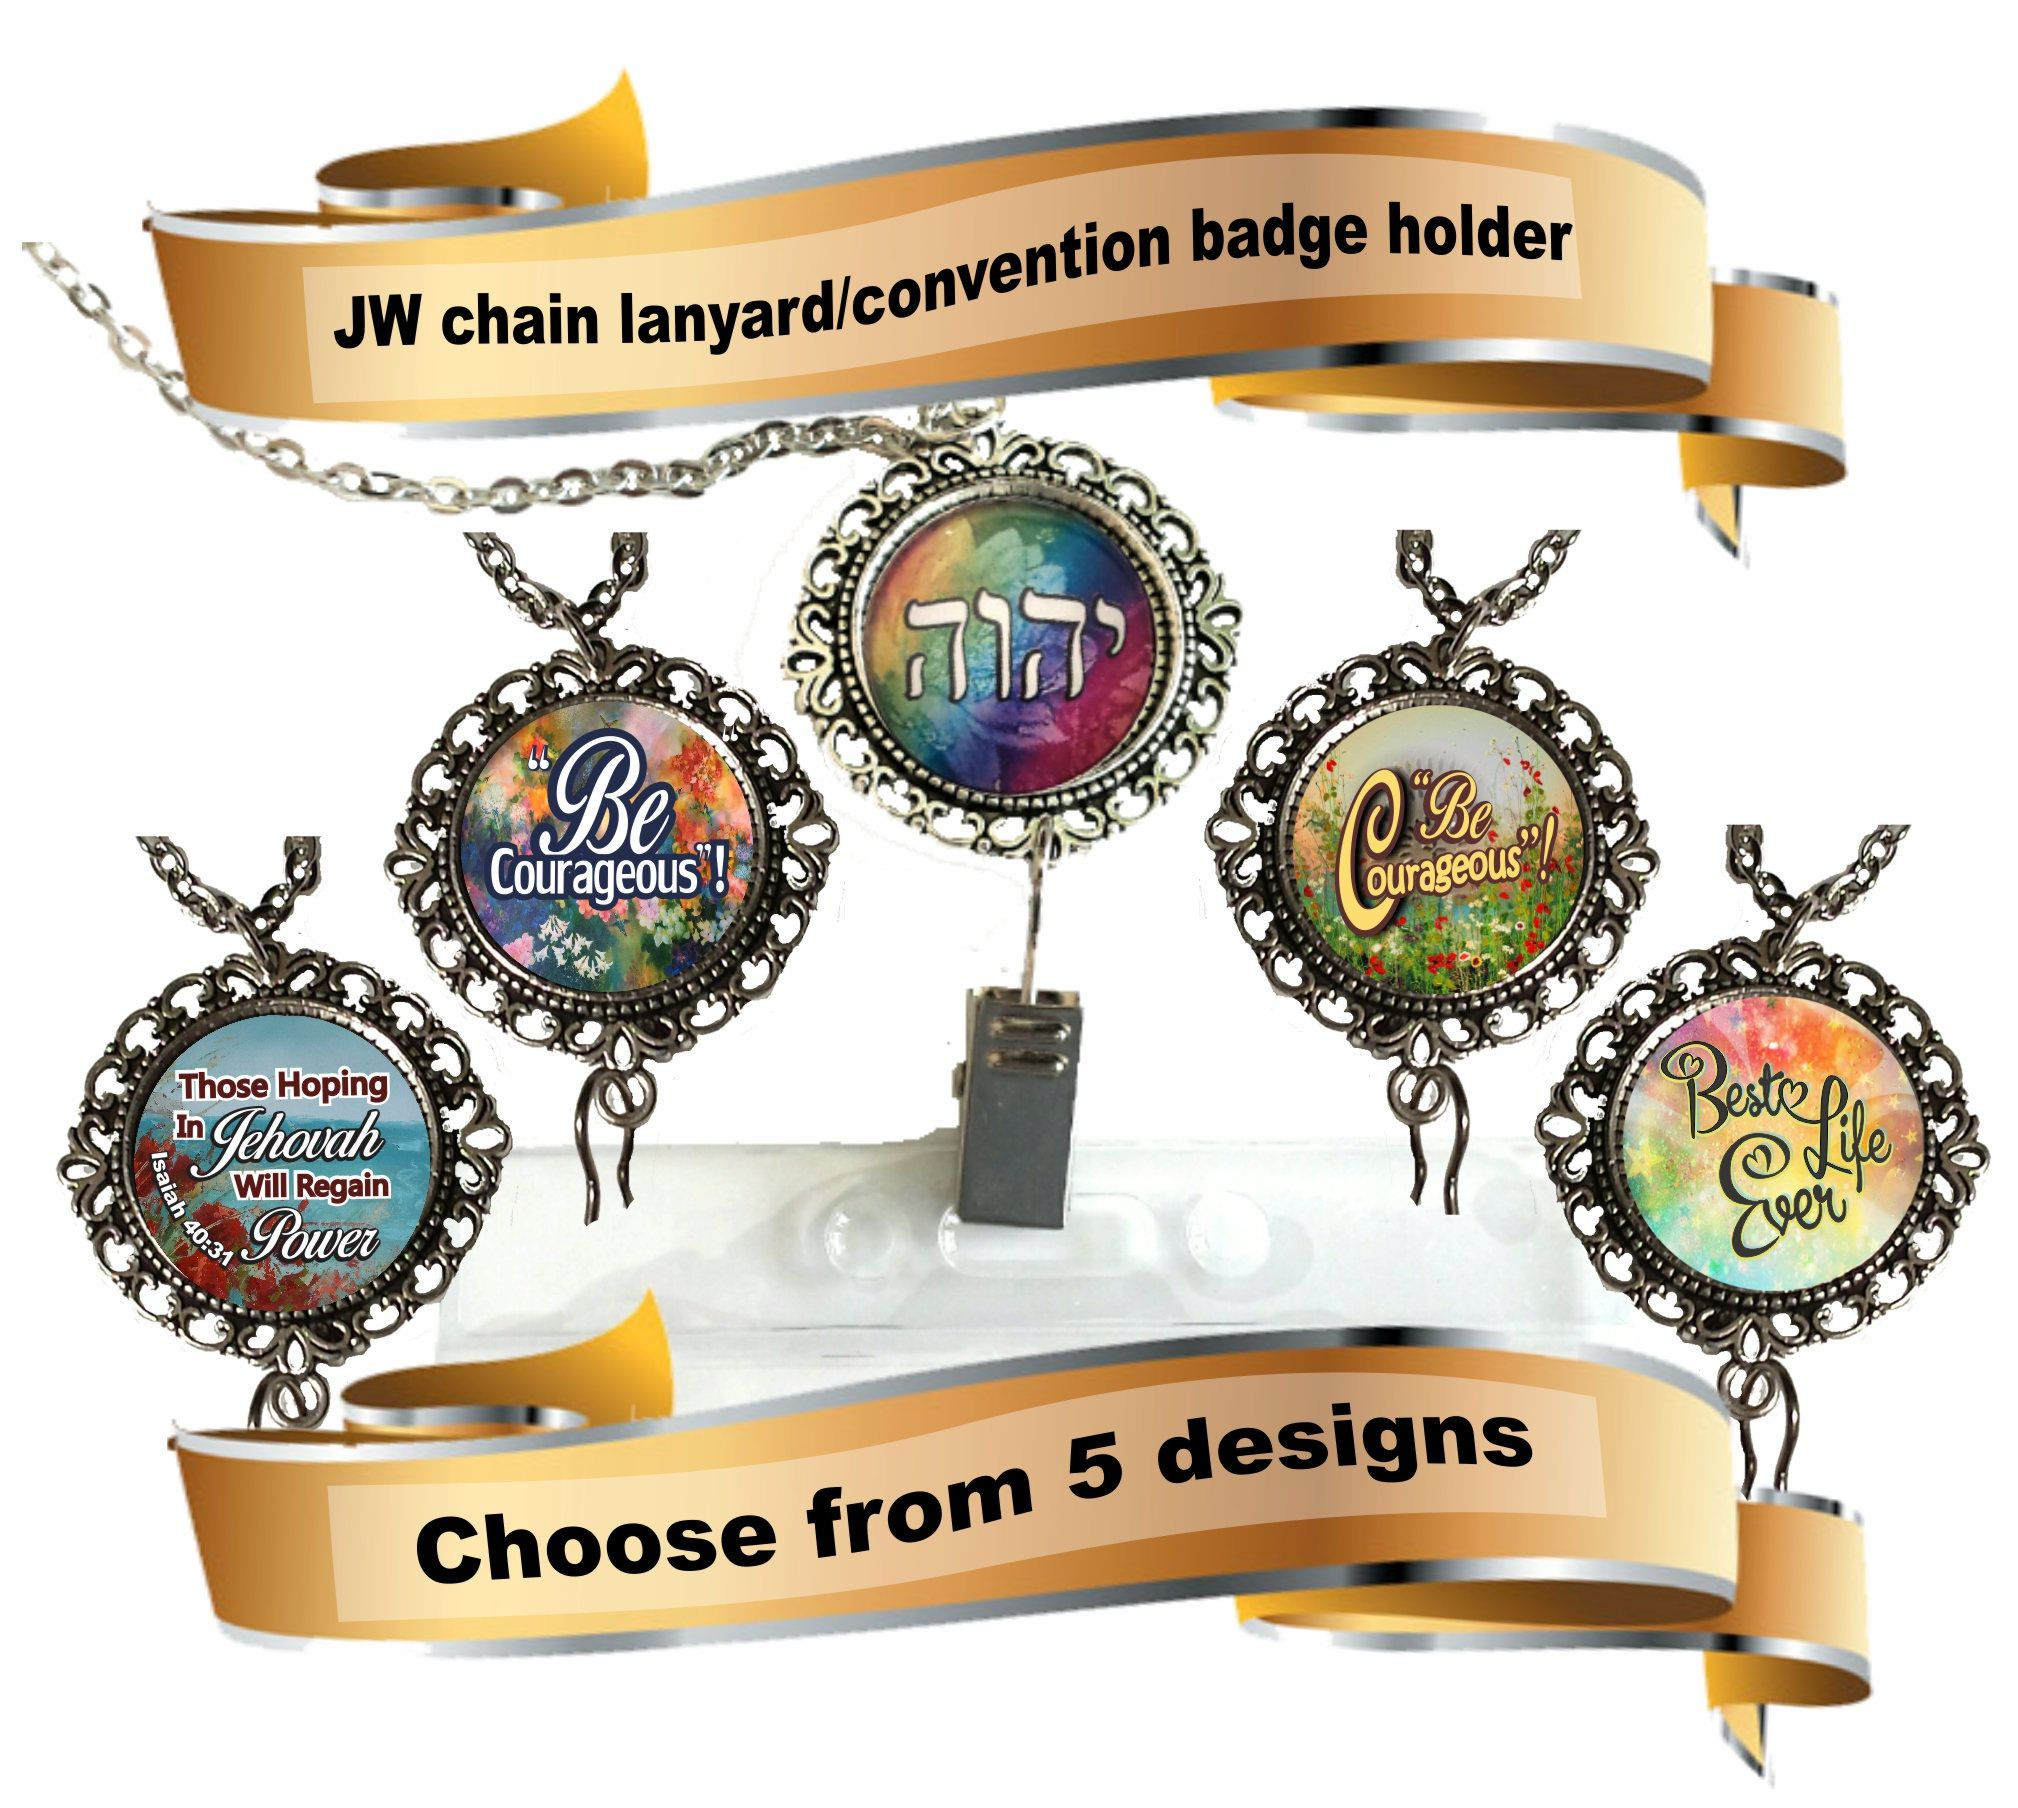 JW gifts/JW convention lanyard badge holder/chain lanyard/necklace